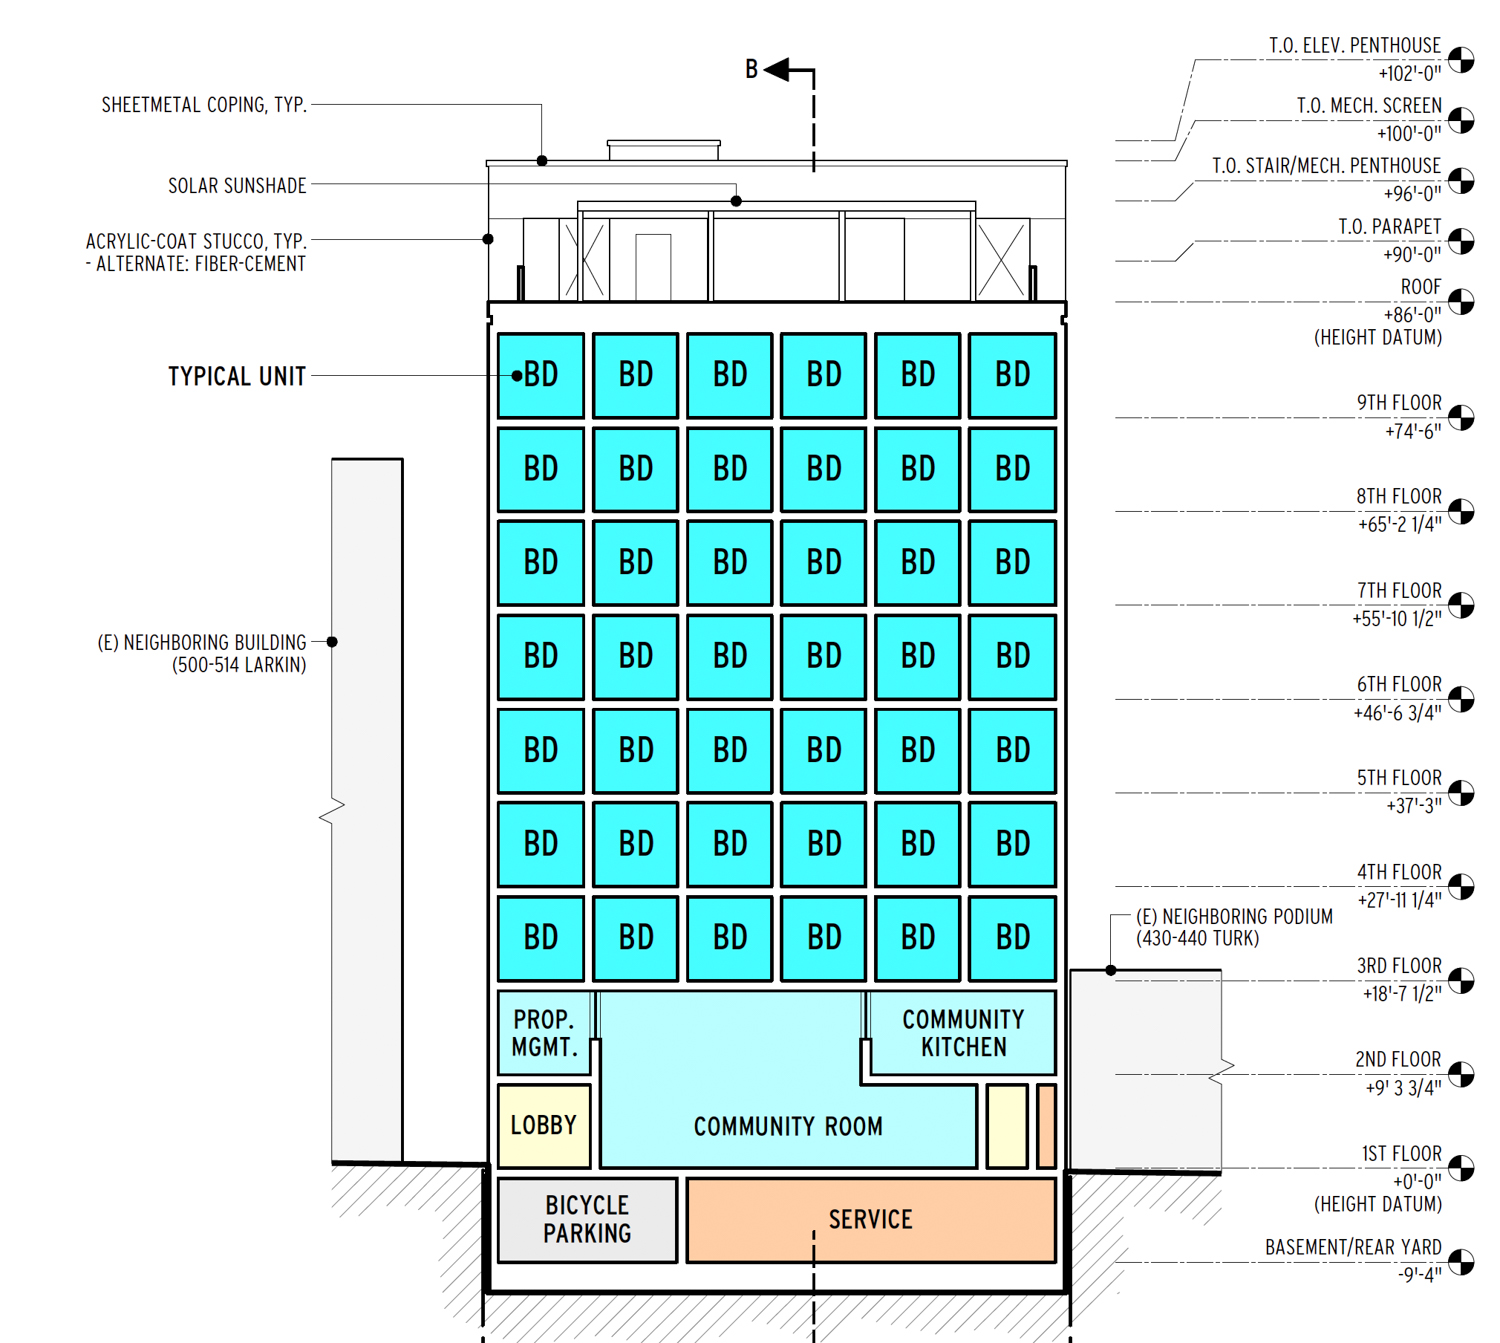 468 Turk Street vertical cross-section of the building, elevation by Macy Architecture